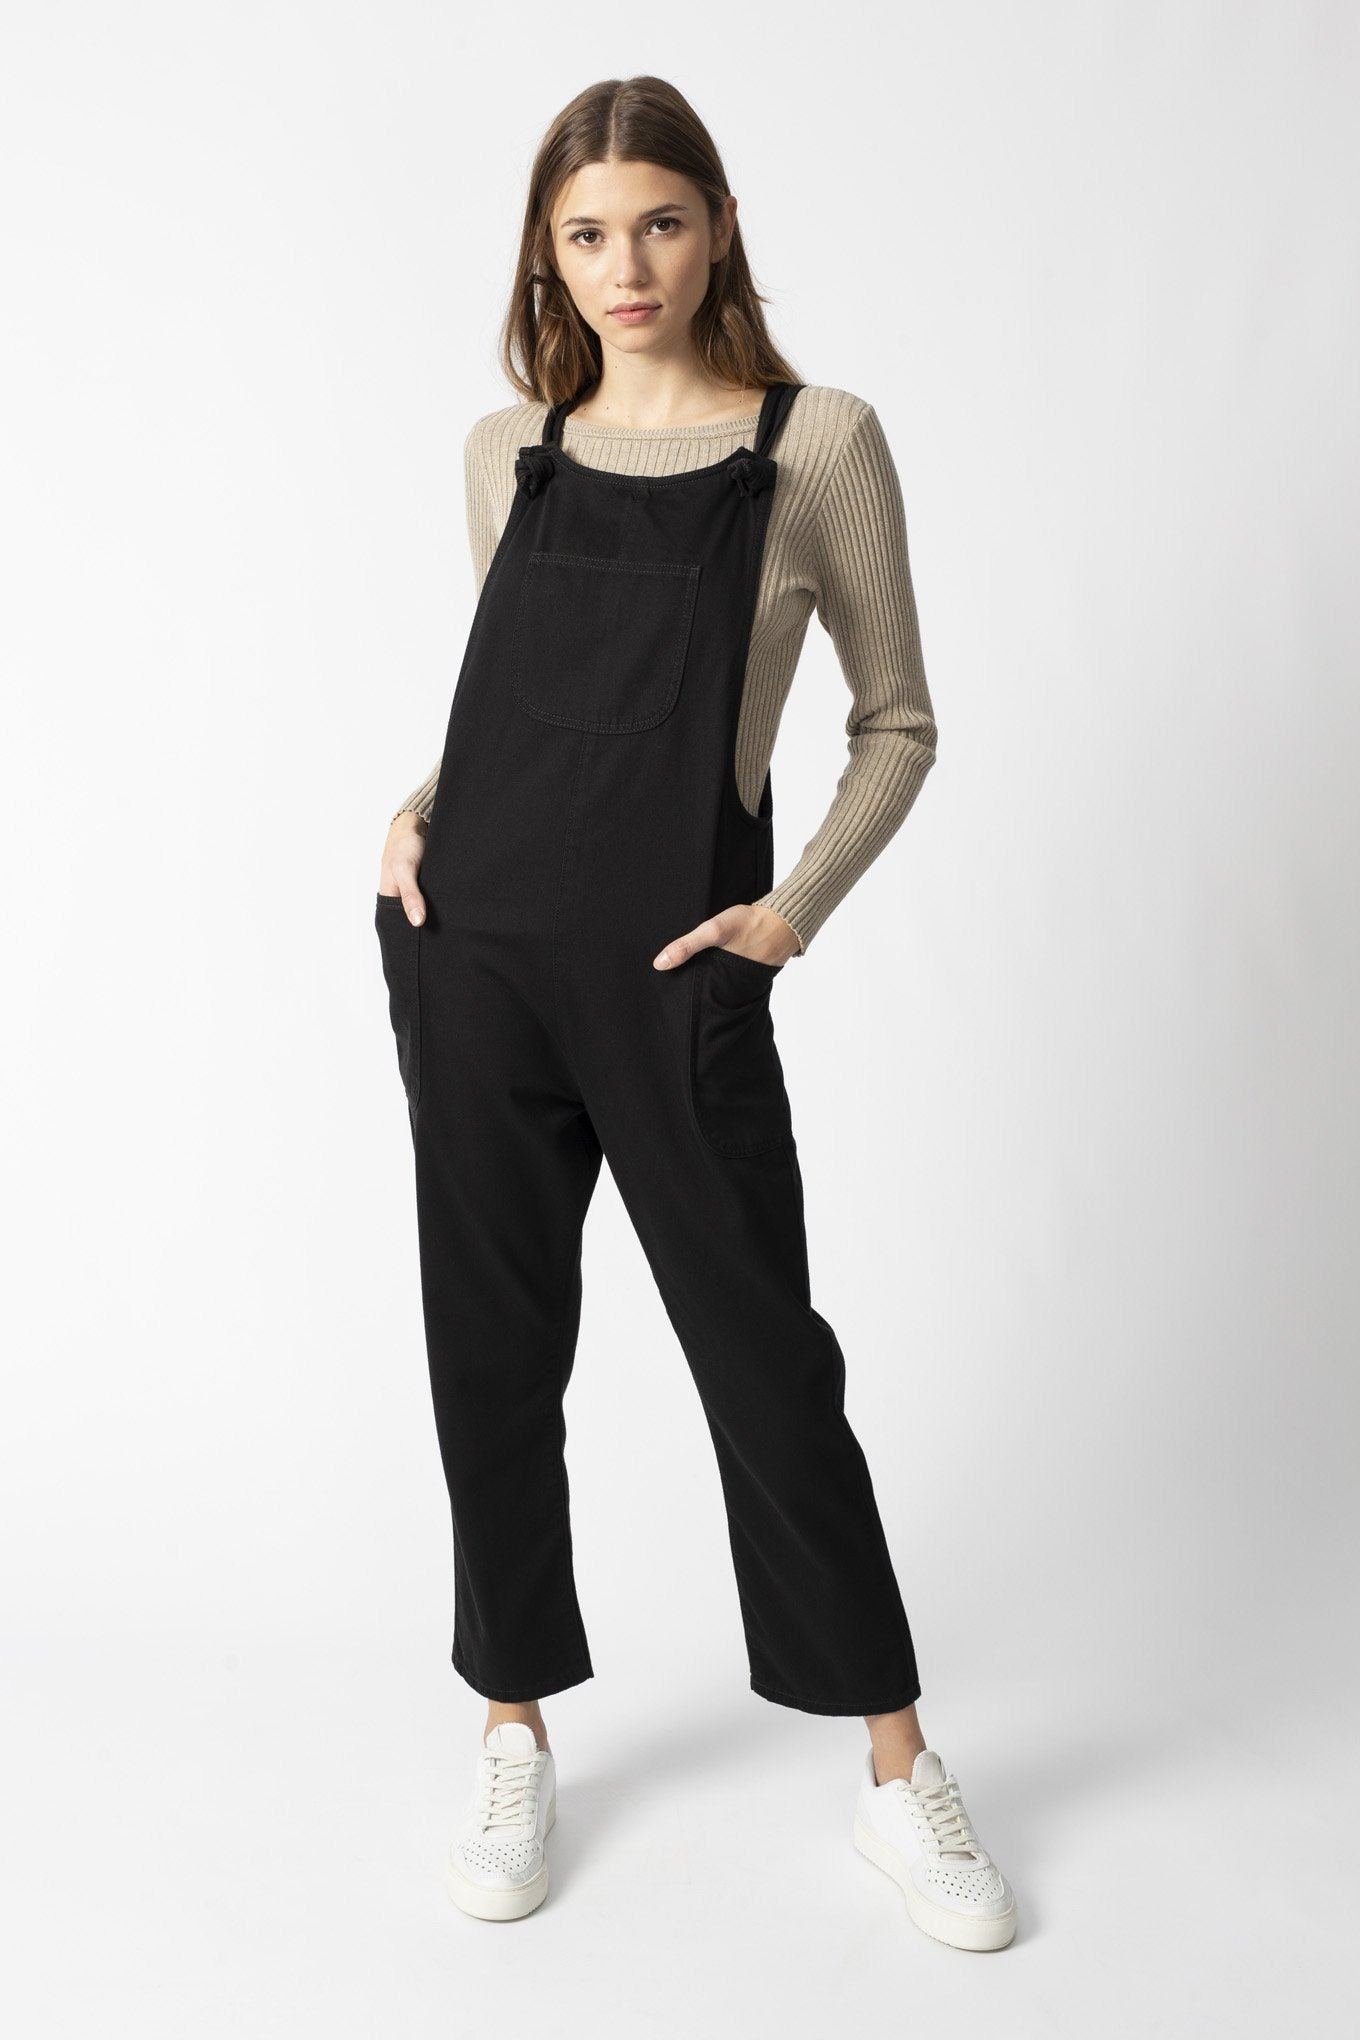 DUNGAREES black organic cotton Jeans by UCM - Komodo Fashion